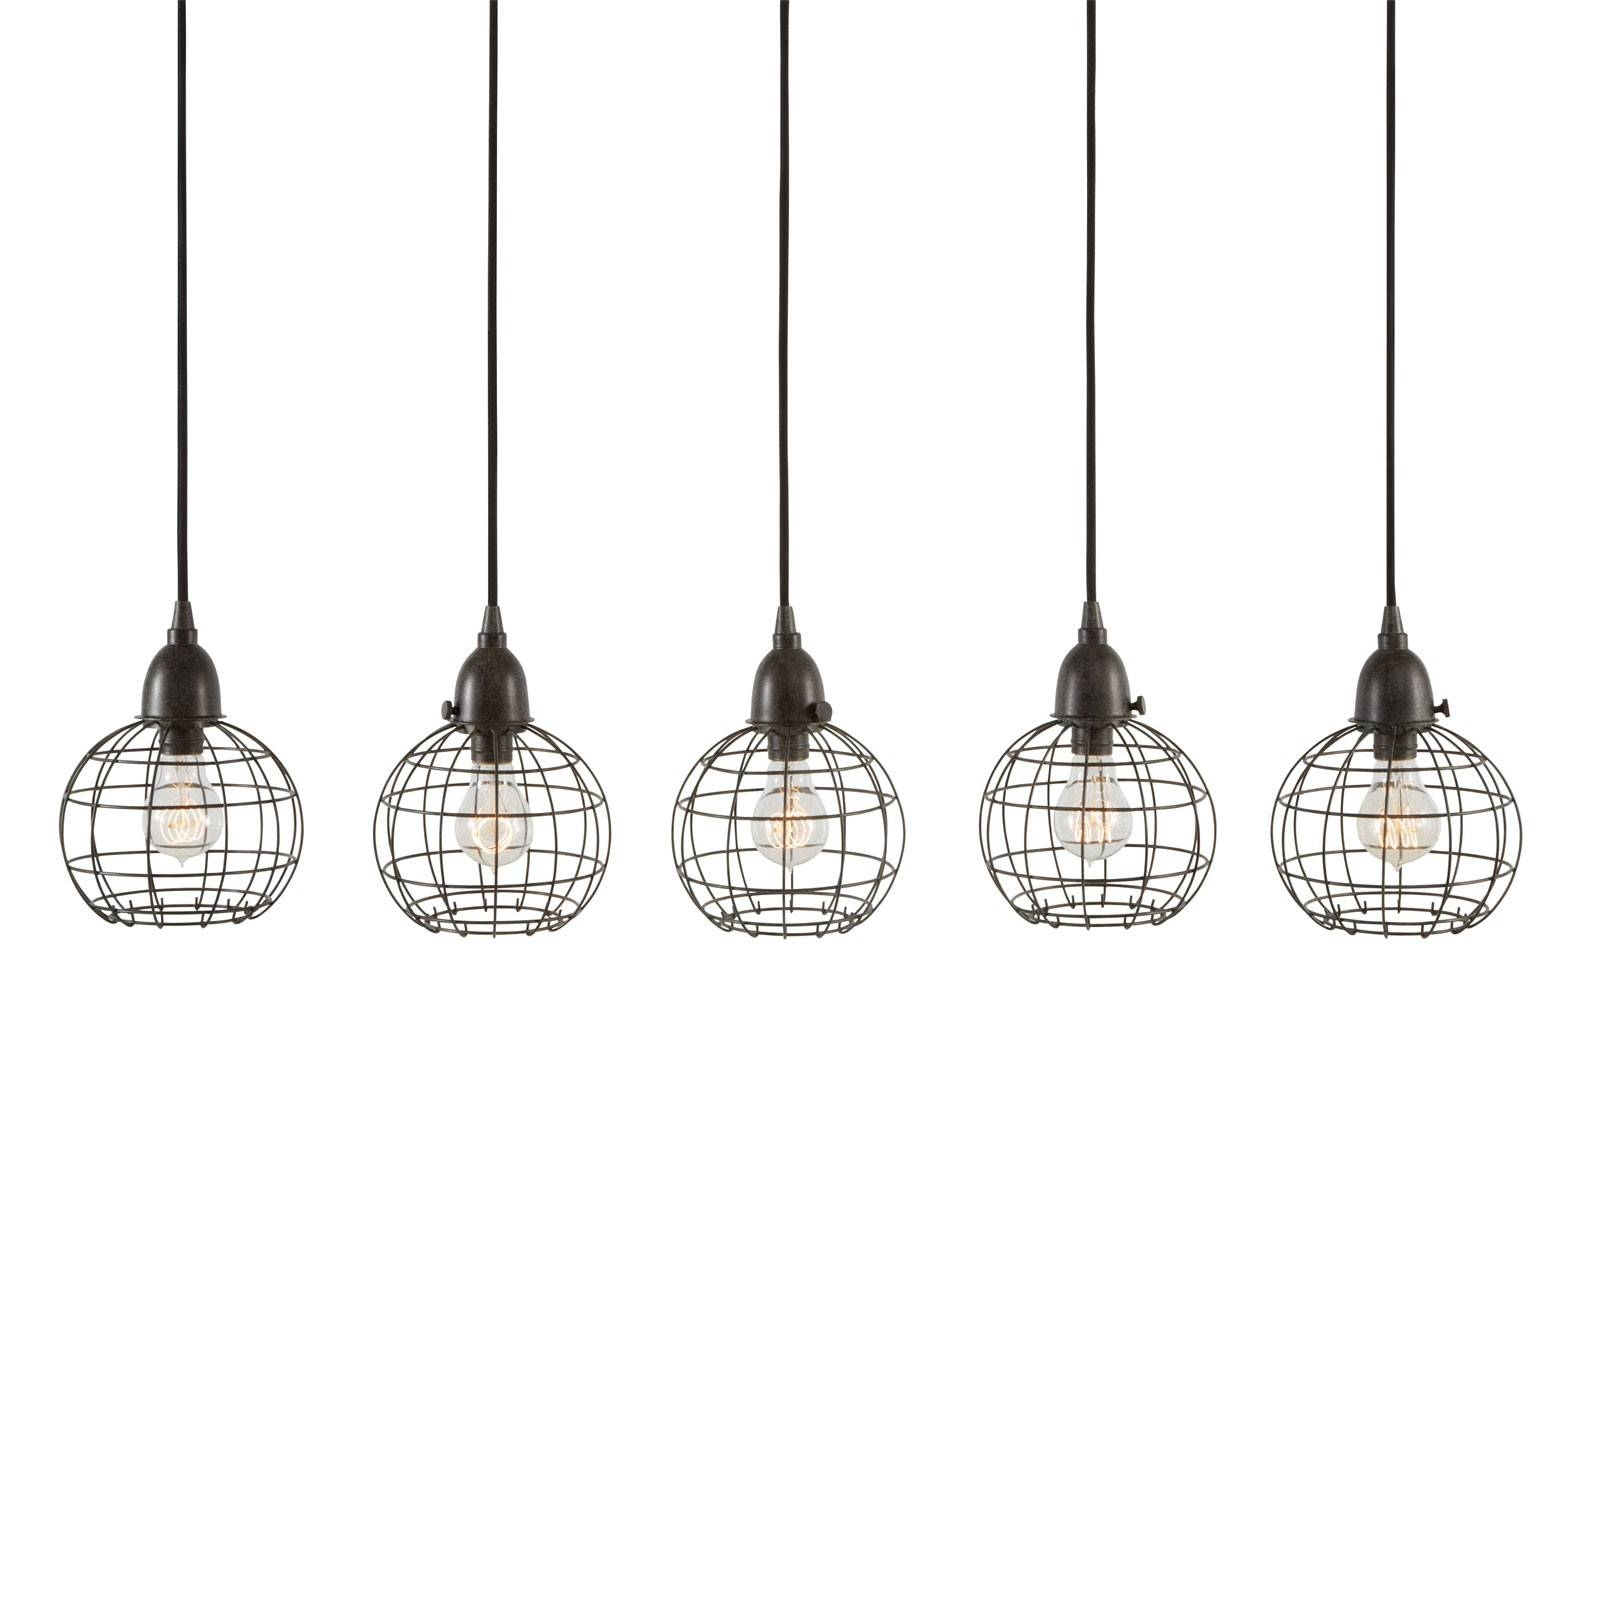 Stunning Wire Pendant Light 92 For Red Mini Pendant Lights With with Wire Ball Pendant Lights (Image 14 of 15)